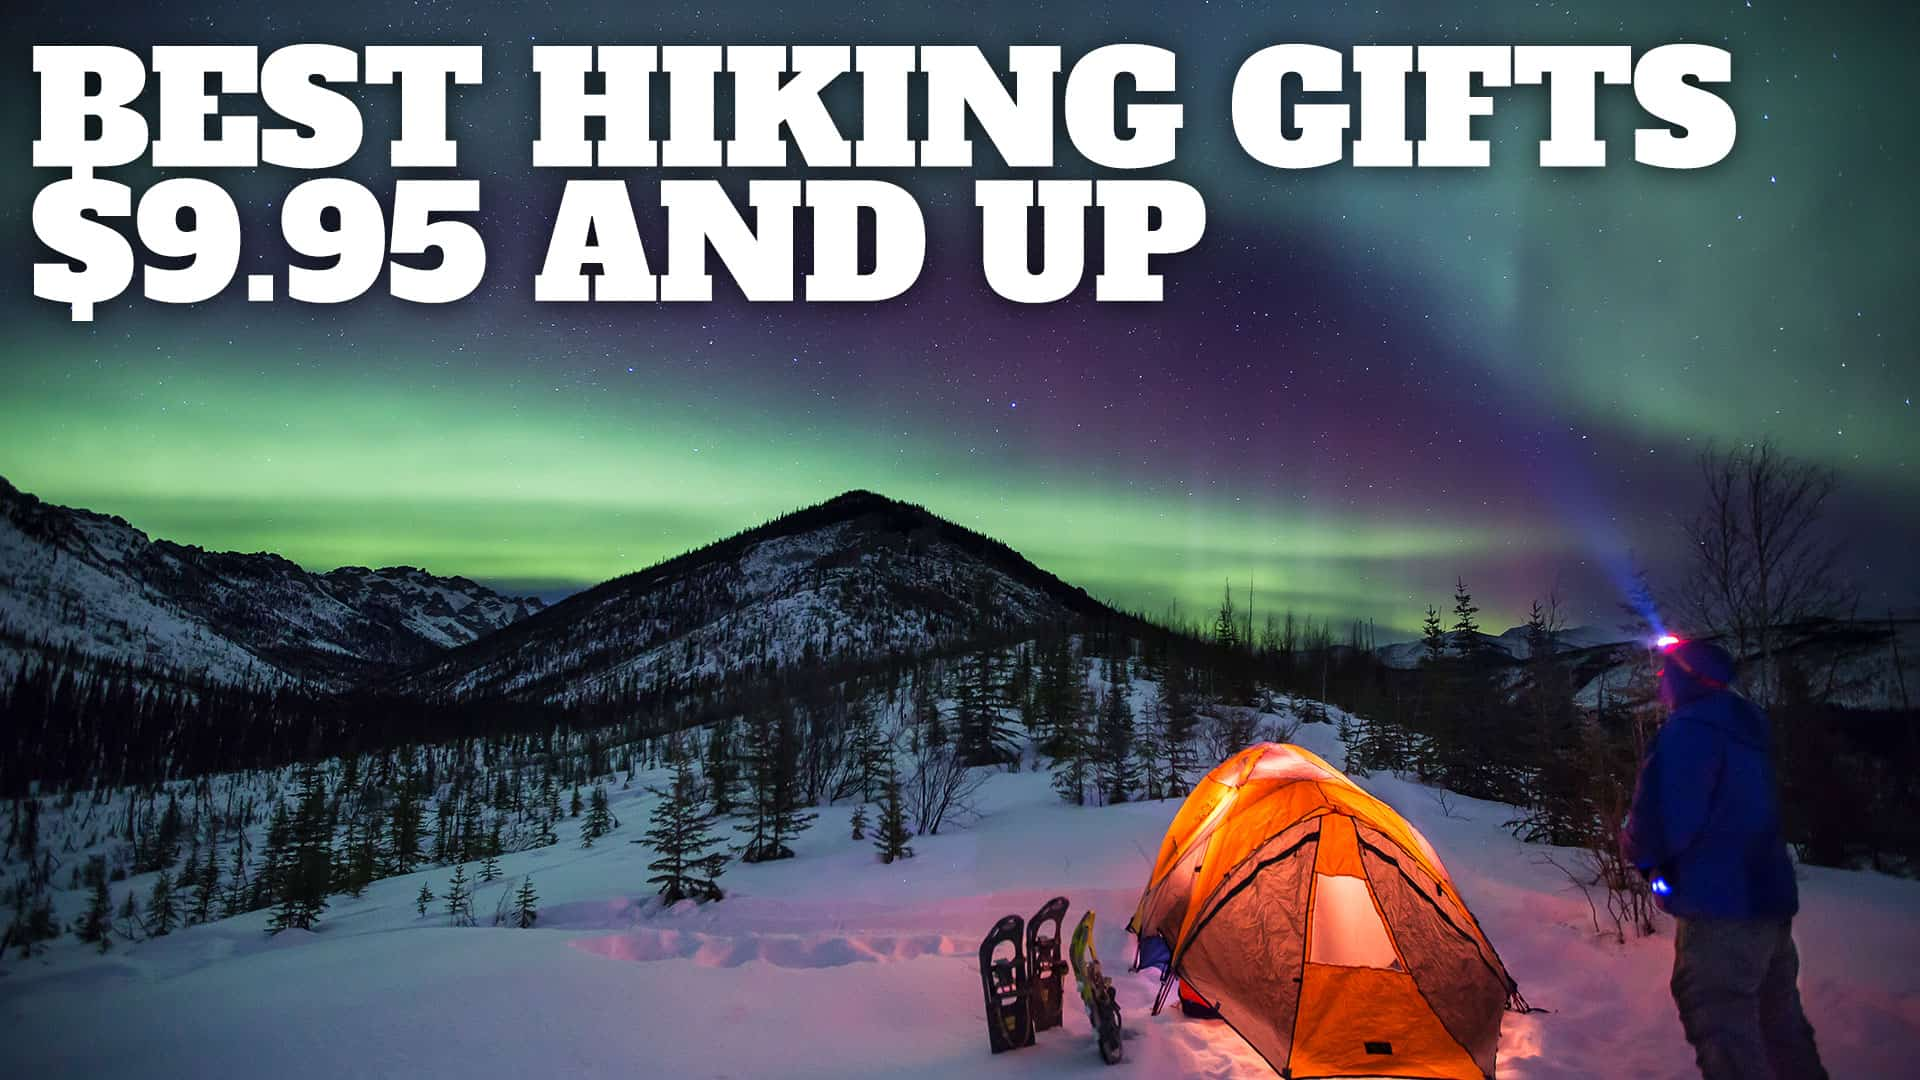 Gifts For Hikers - 2020 - HikingGuy.com